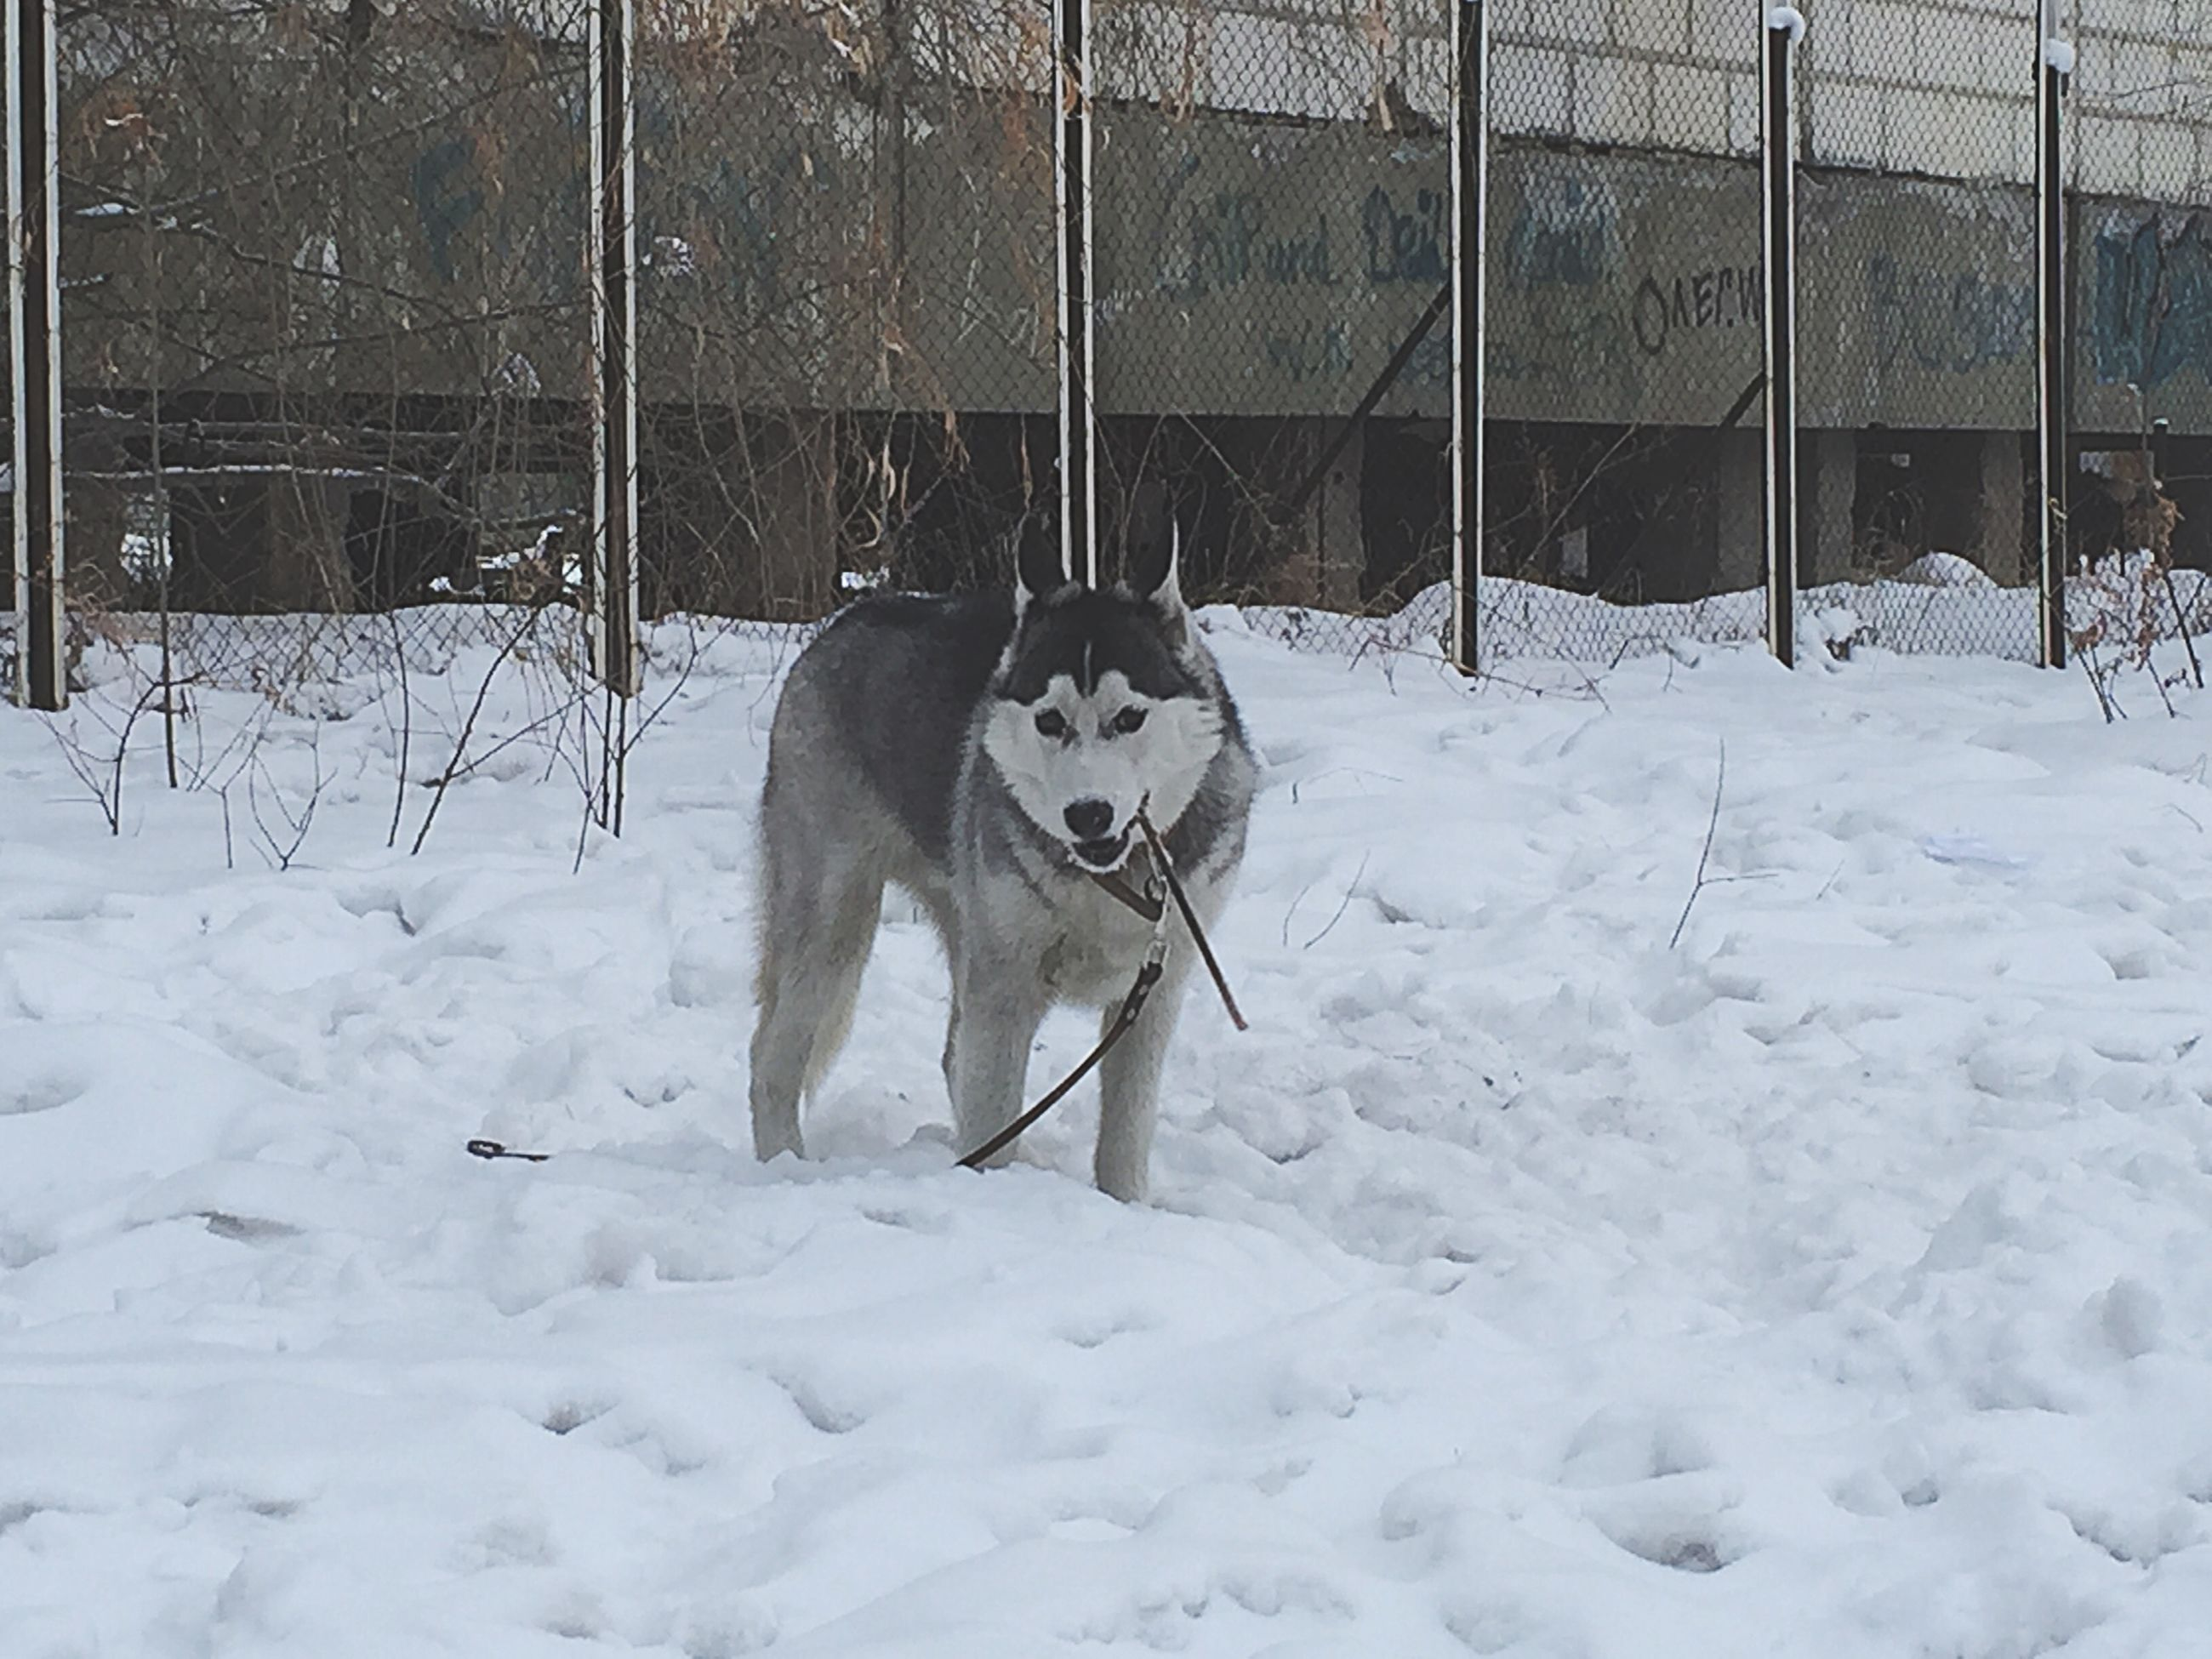 domestic animals, animal themes, mammal, pets, one animal, snow, dog, winter, cold temperature, season, white color, fence, full length, weather, standing, covering, field, pet leash, outdoors, day